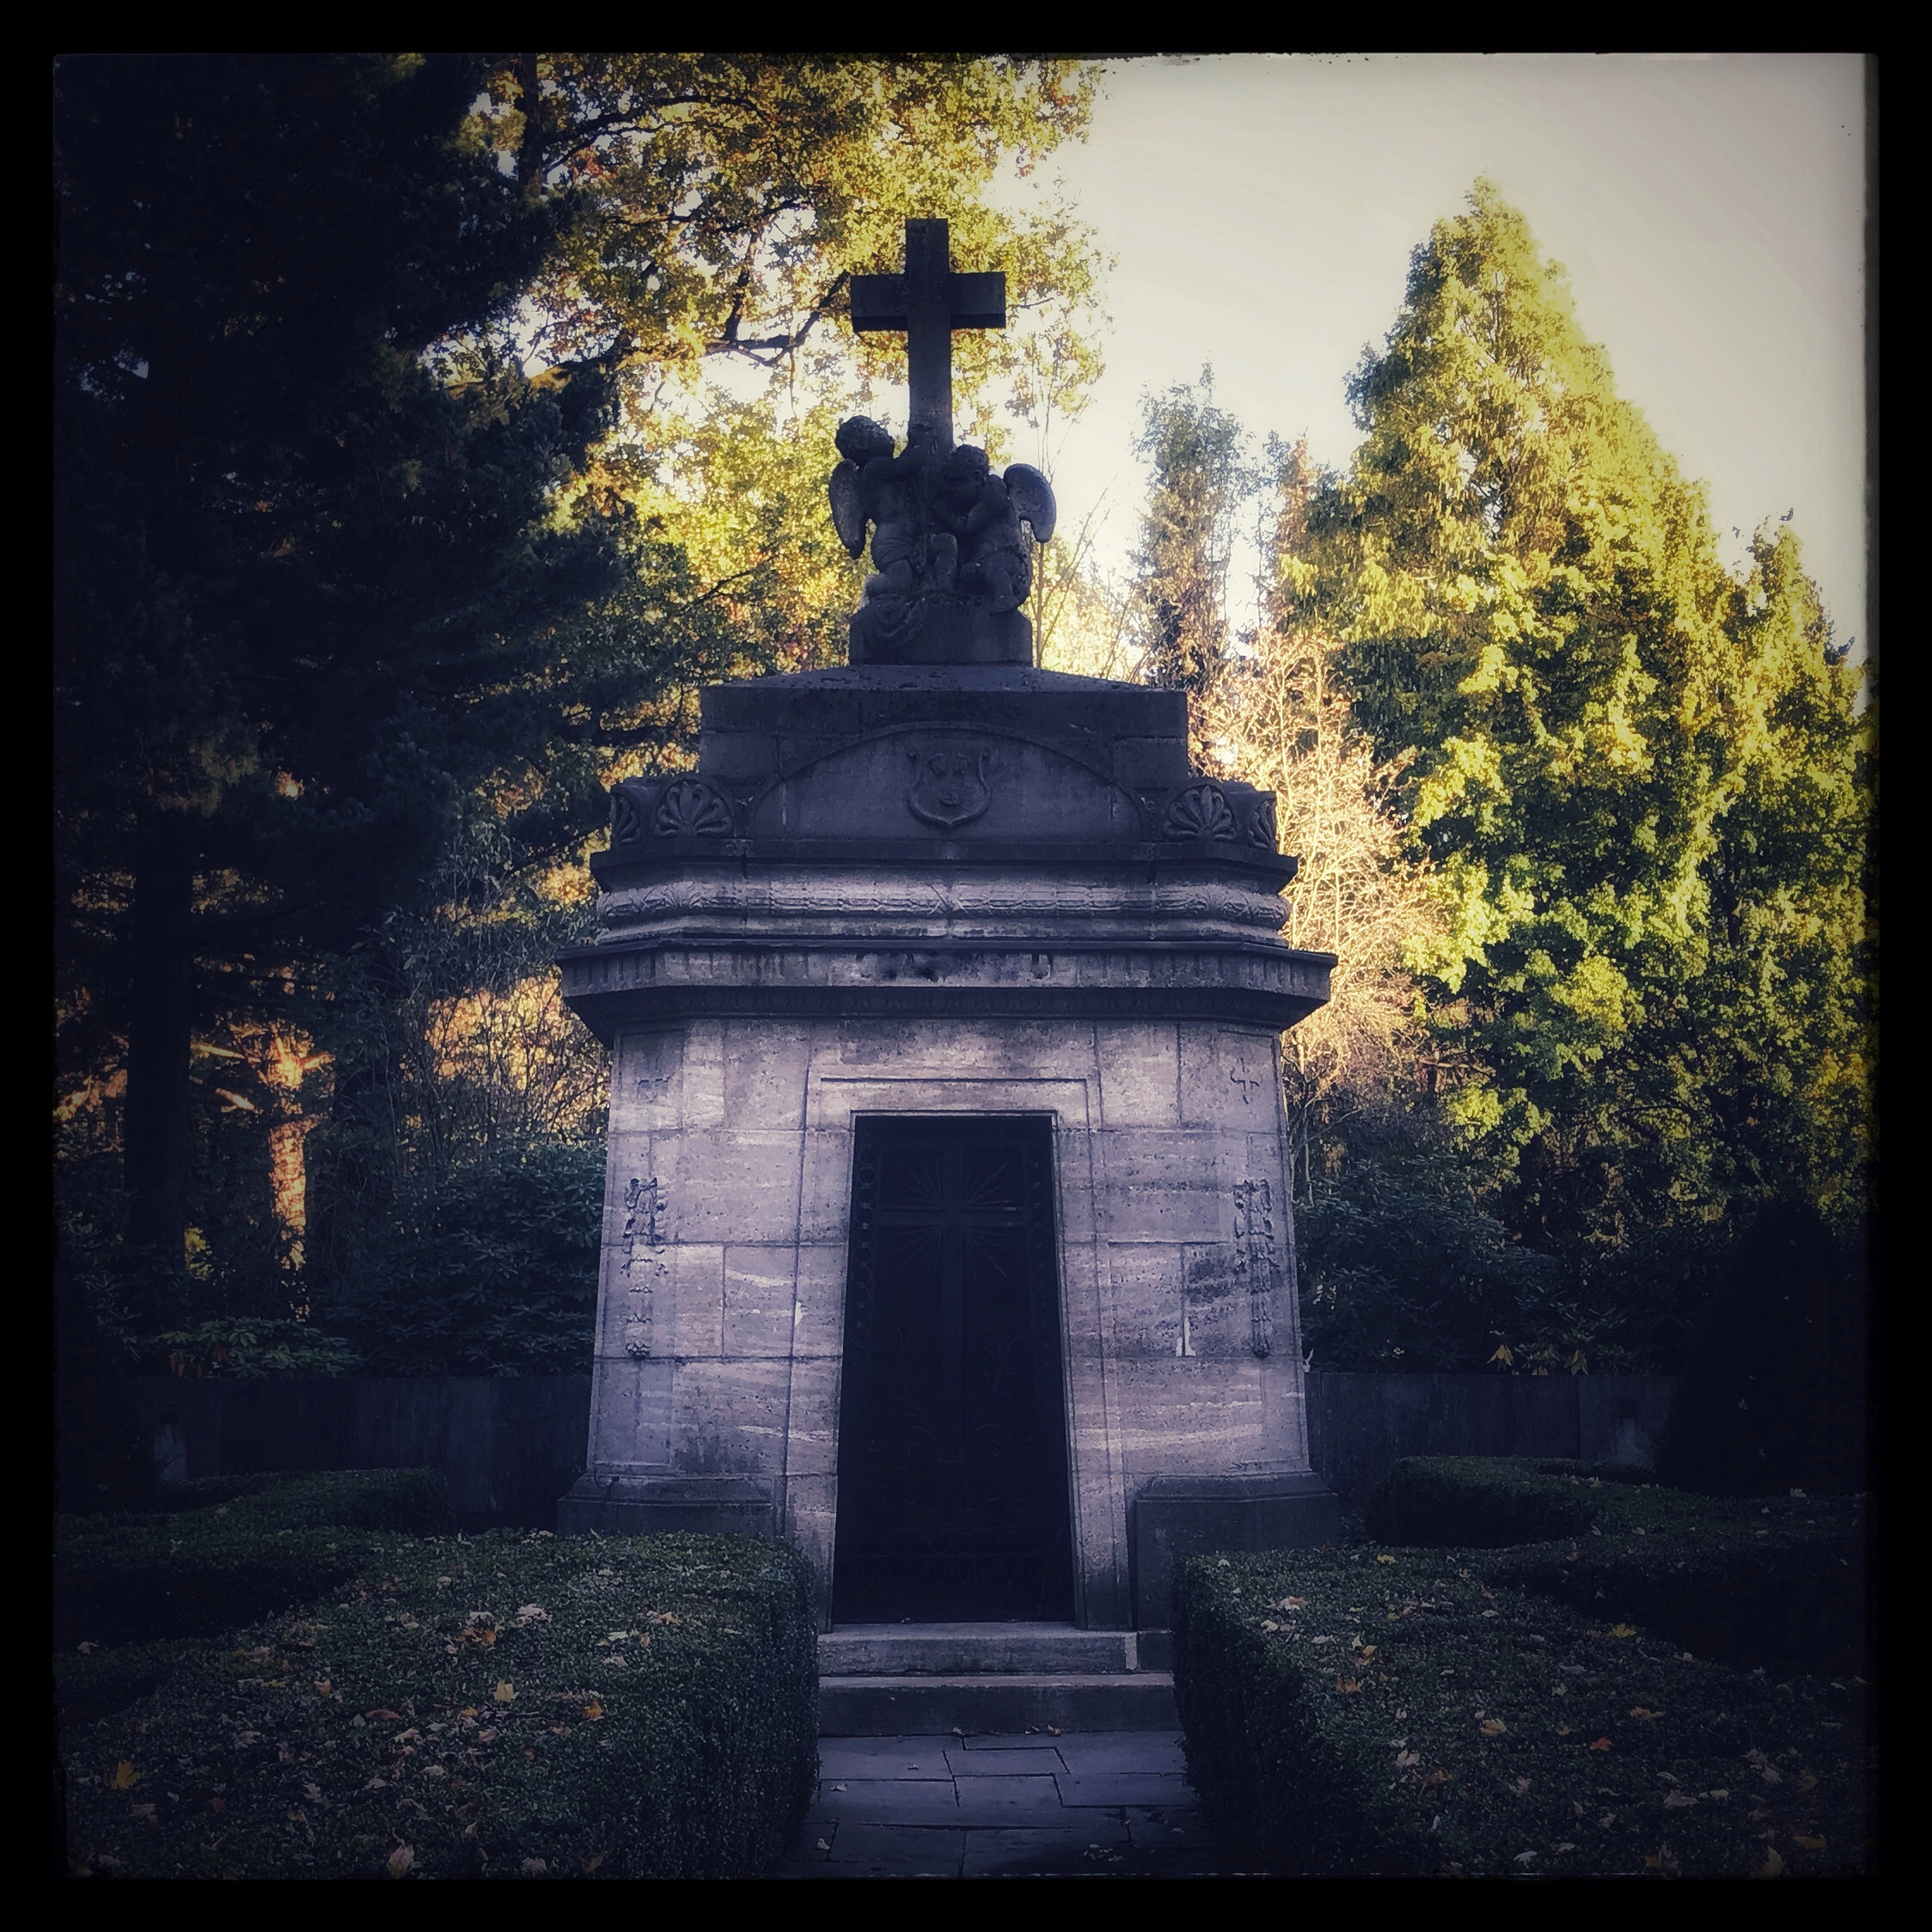 Dortmund Südfriedhof, 14th of October 2017